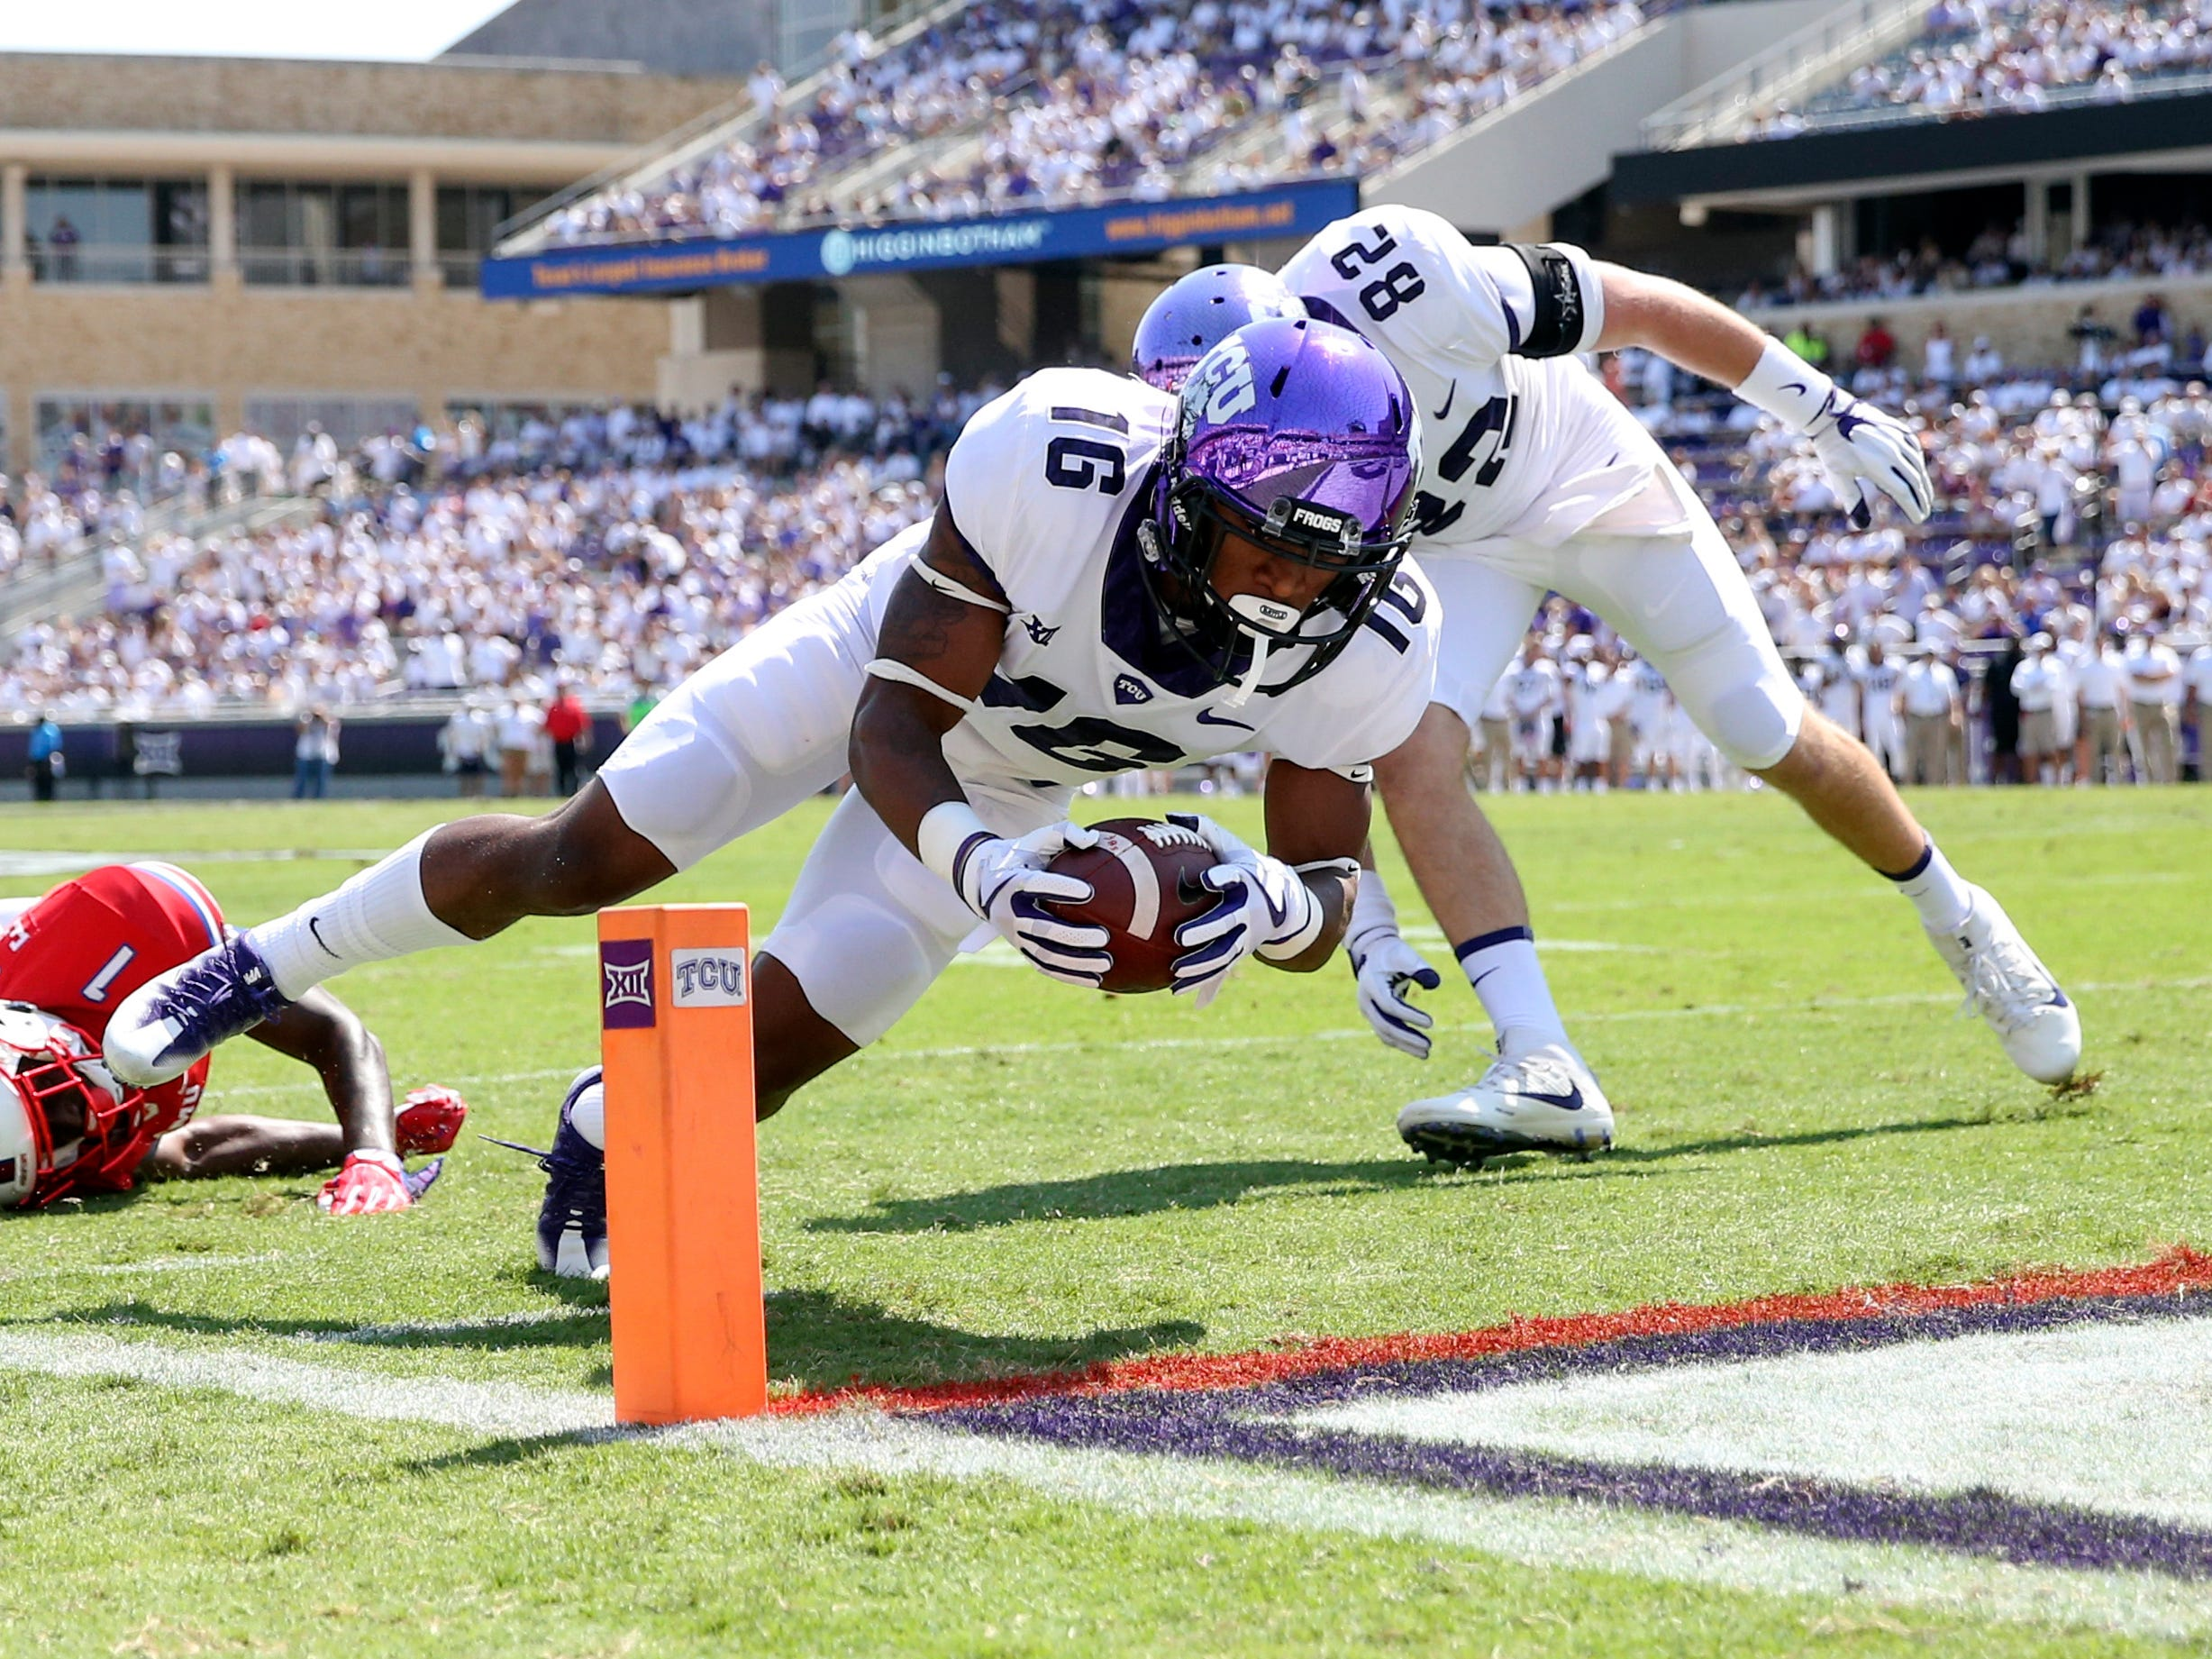 No. 16 TCU Horned Frogs (11-3 in 2017).